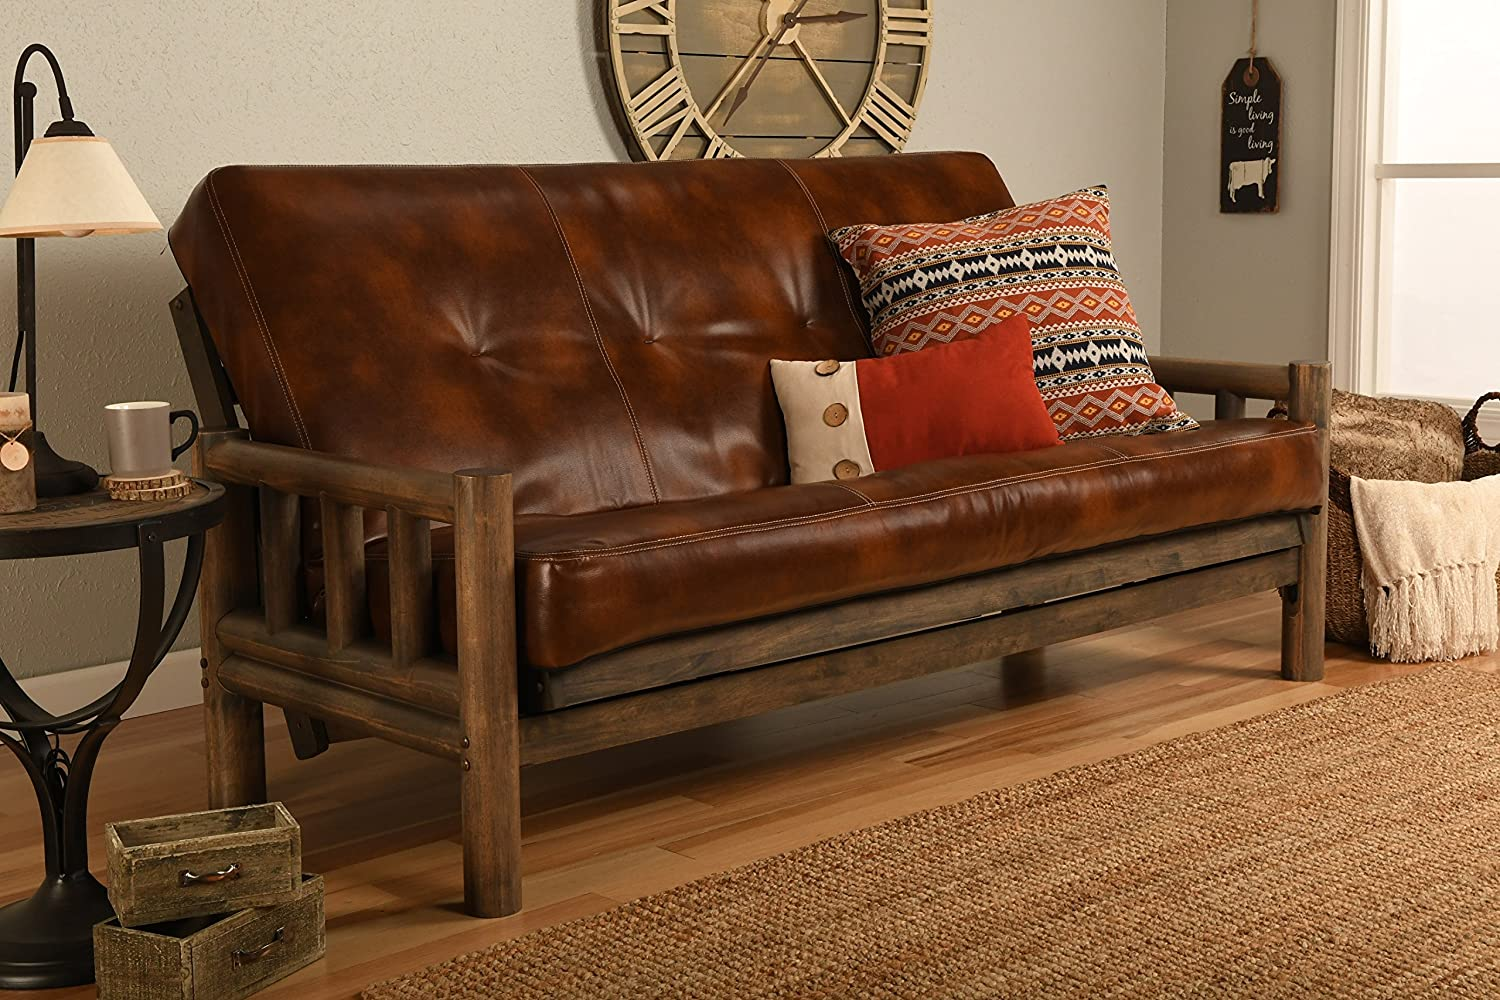 Jerry Sales Up North Futon Lodge Frame and Mattress Full Size Sofa Bed Leather Havana Rustic